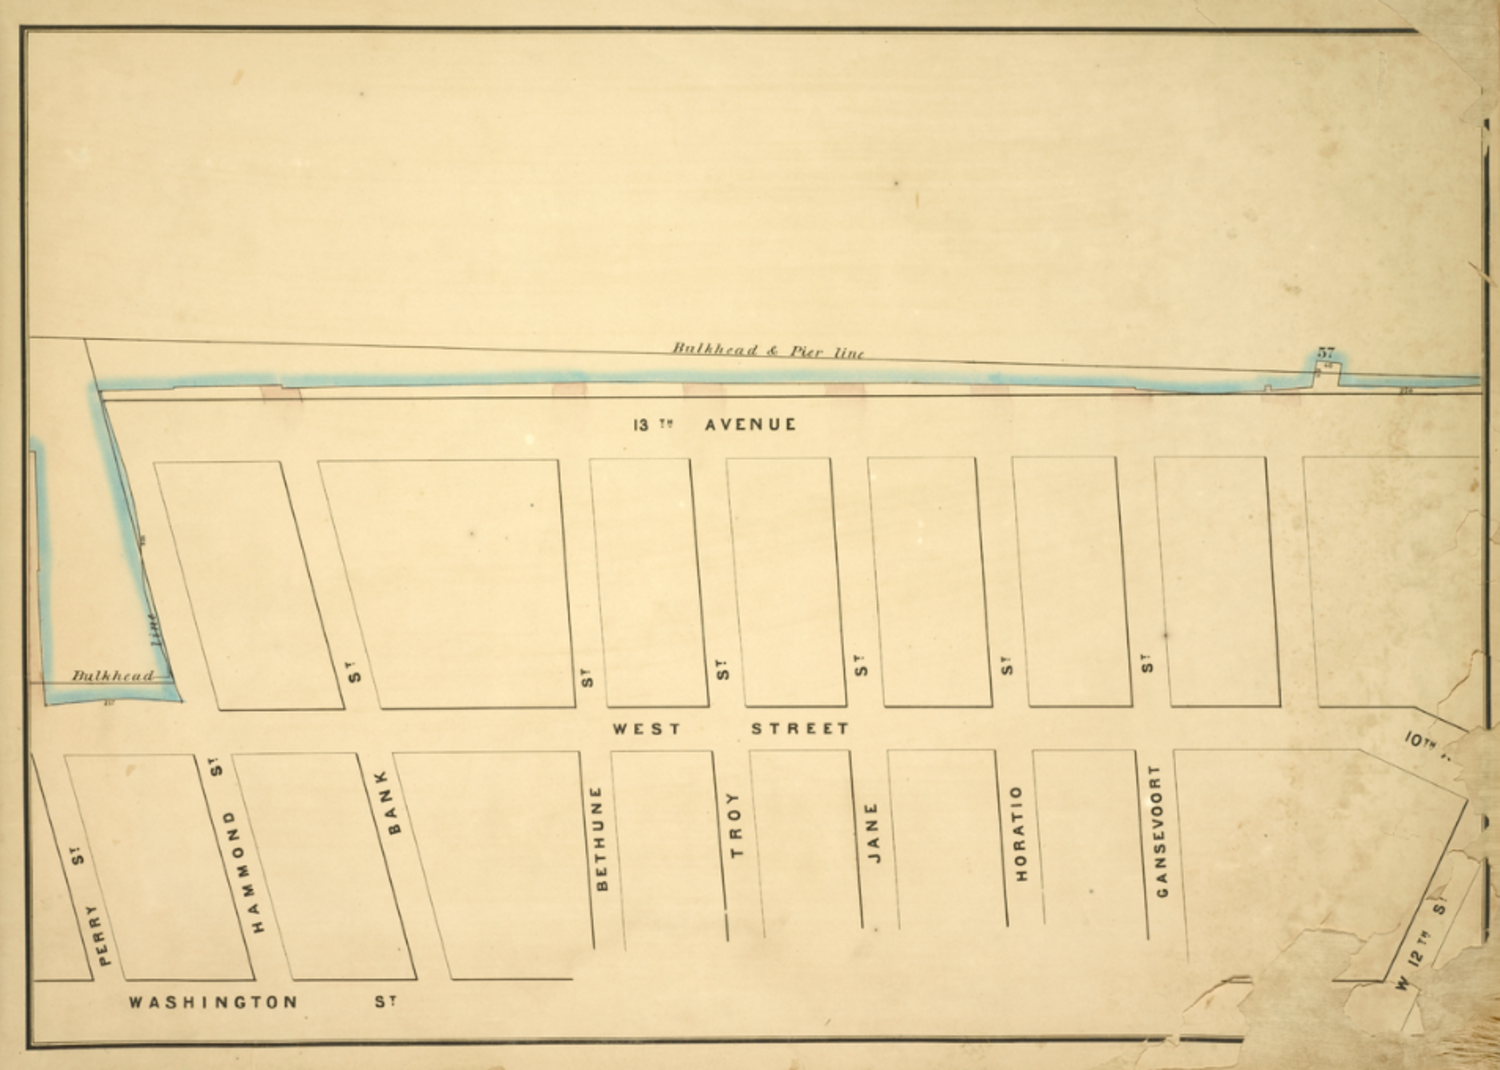 Map of 13th Avenue in 1860